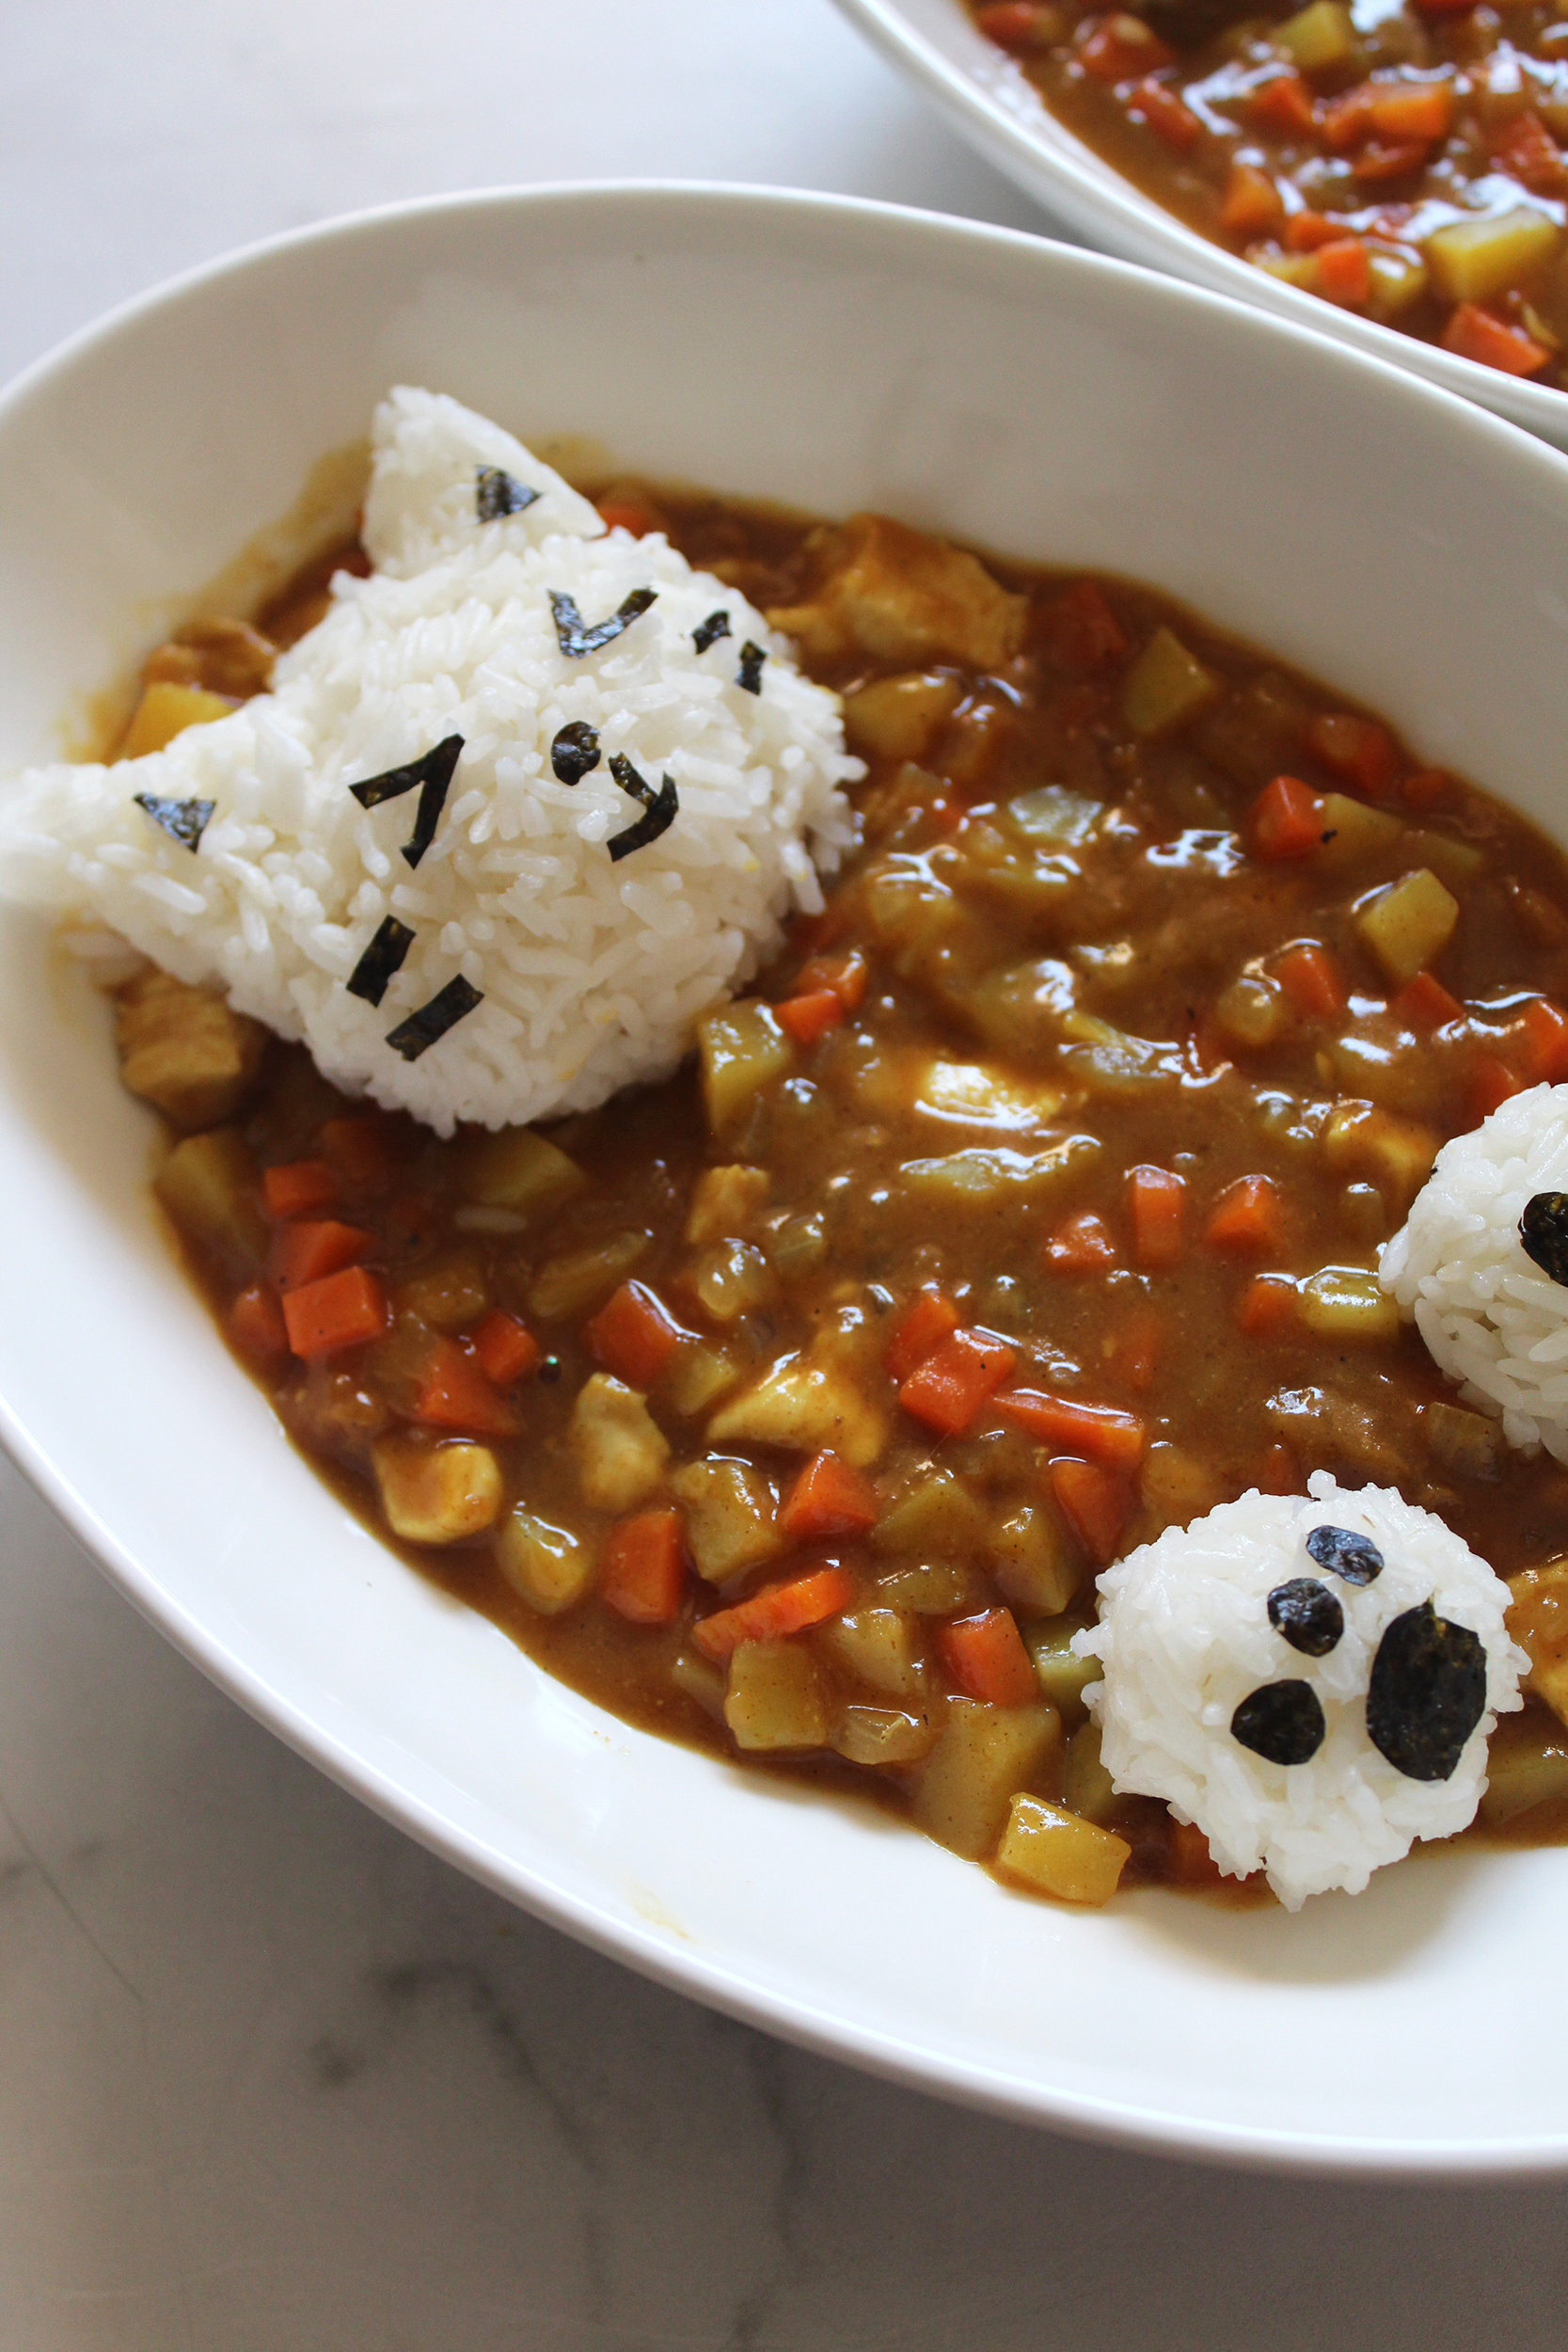 Japanese Curry With Cat Rice Balls Mango S Home Kitchen